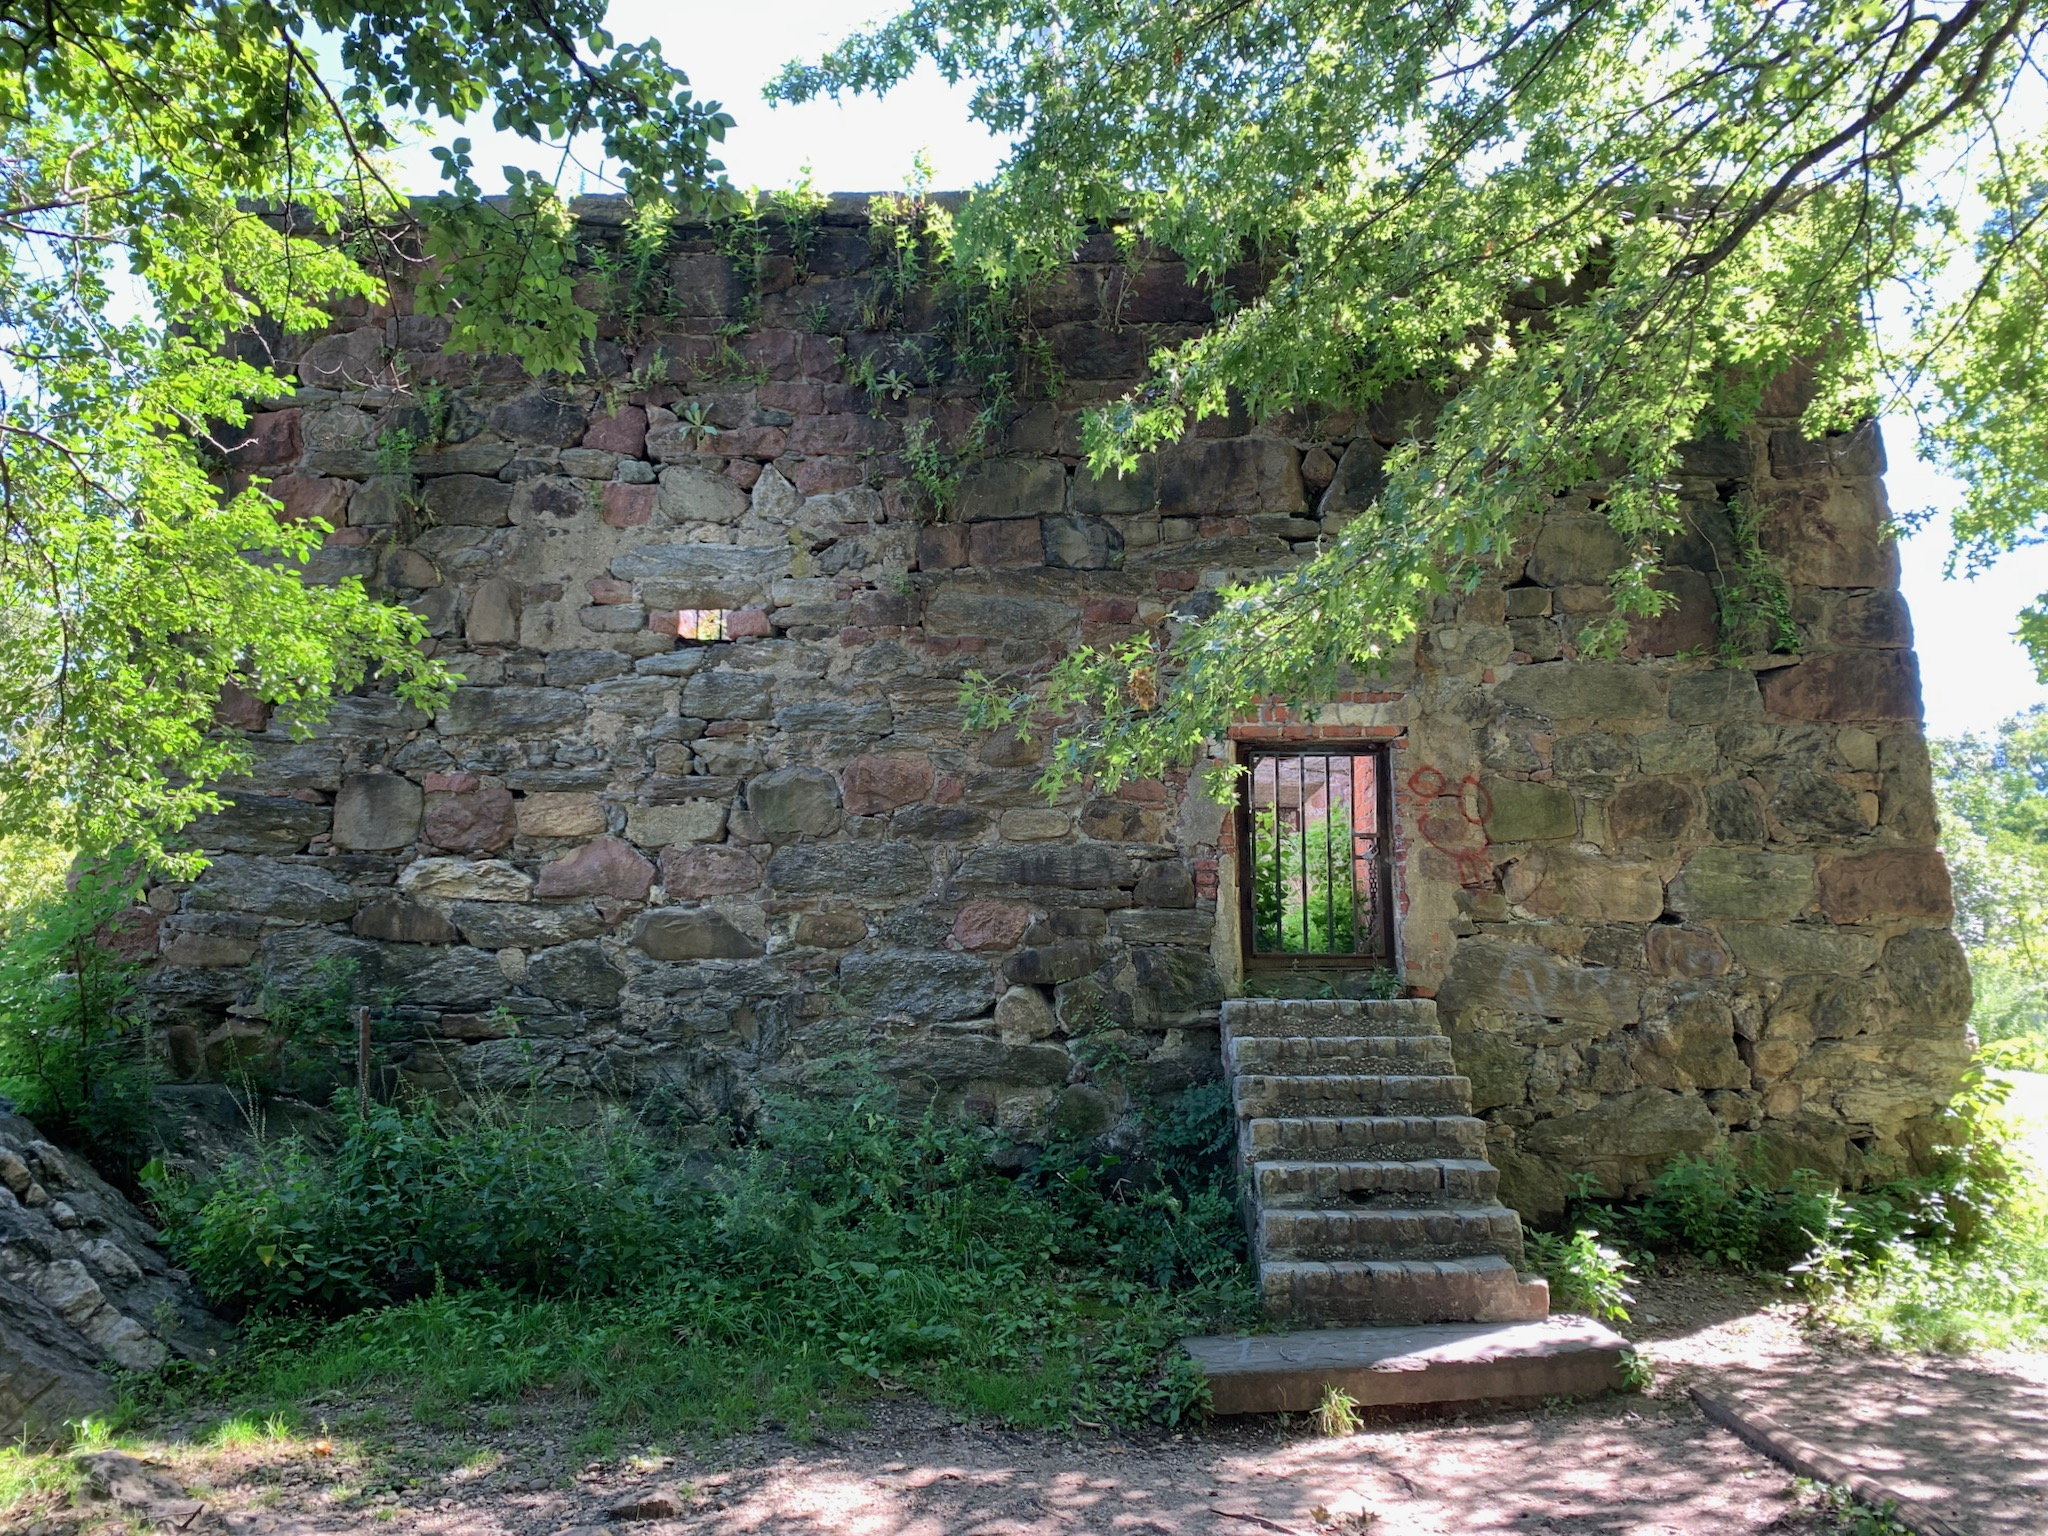 Photo of The Blockhouse in Central Park